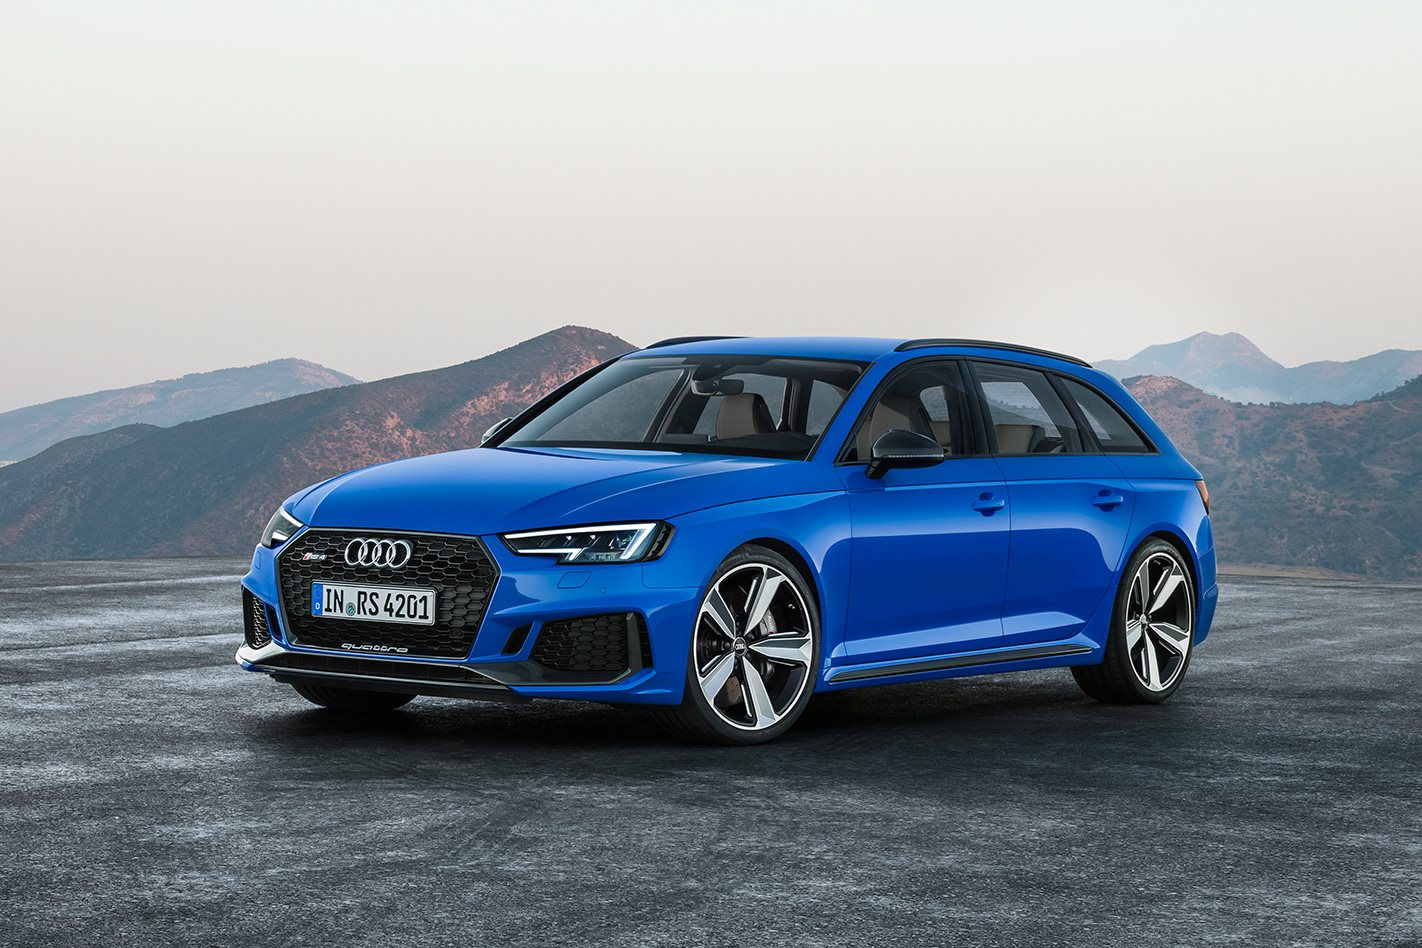 The new RS is 30mm wider than the standard A4 Avant with the typical sporty styling garnishes added